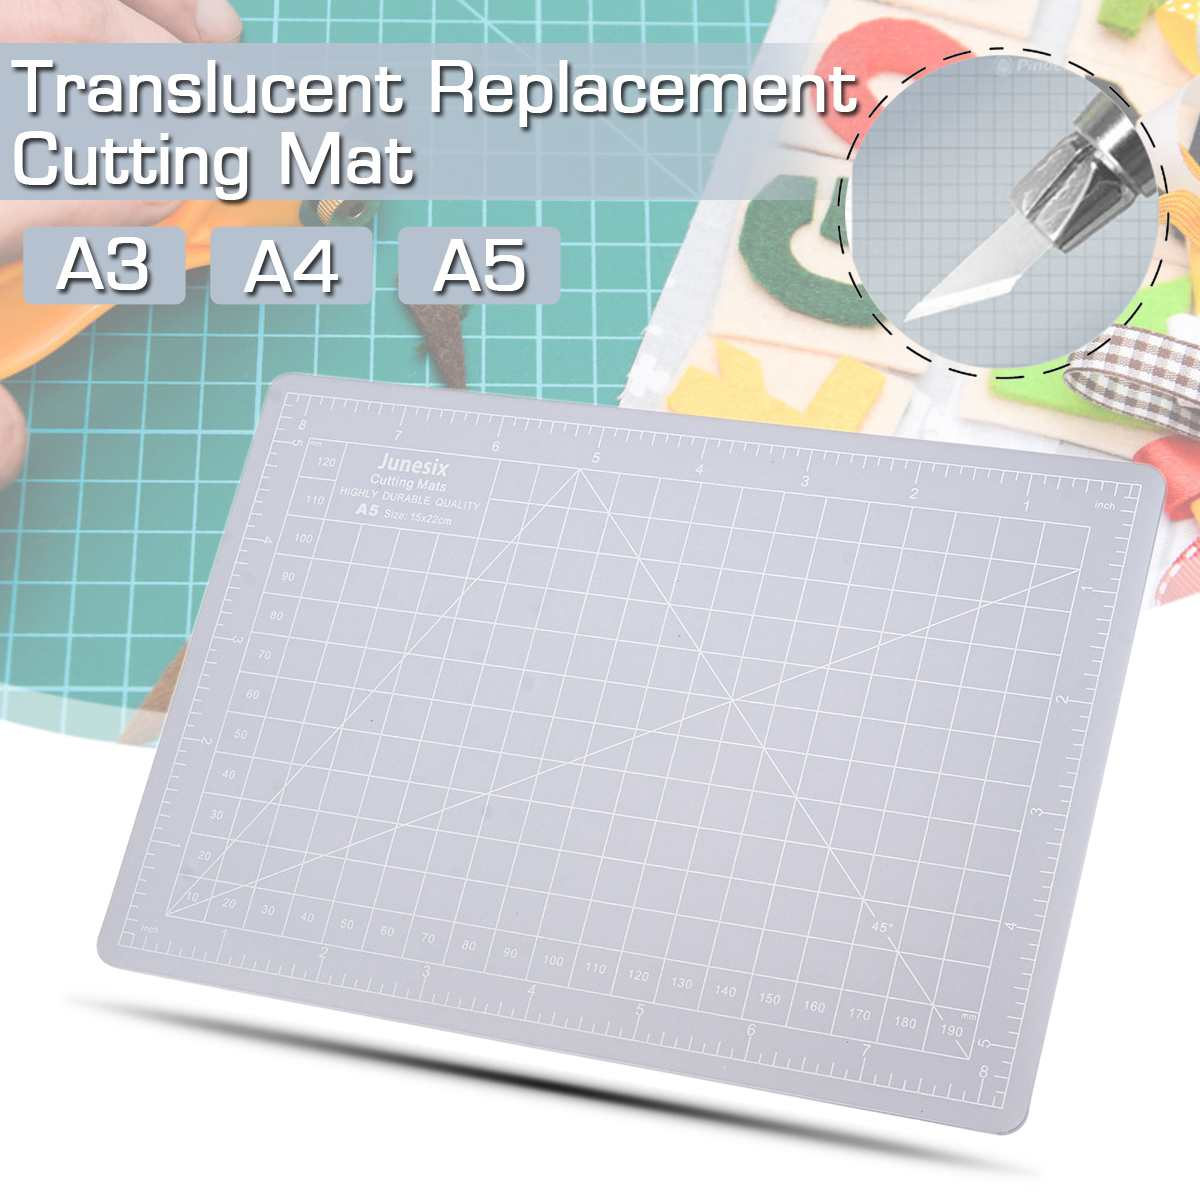 A3, A4, A5 Transparent Replacement Cutting Mat Adhesive Mat Composite PVC With Measuring Grid For Silhouette Cameo Plotter